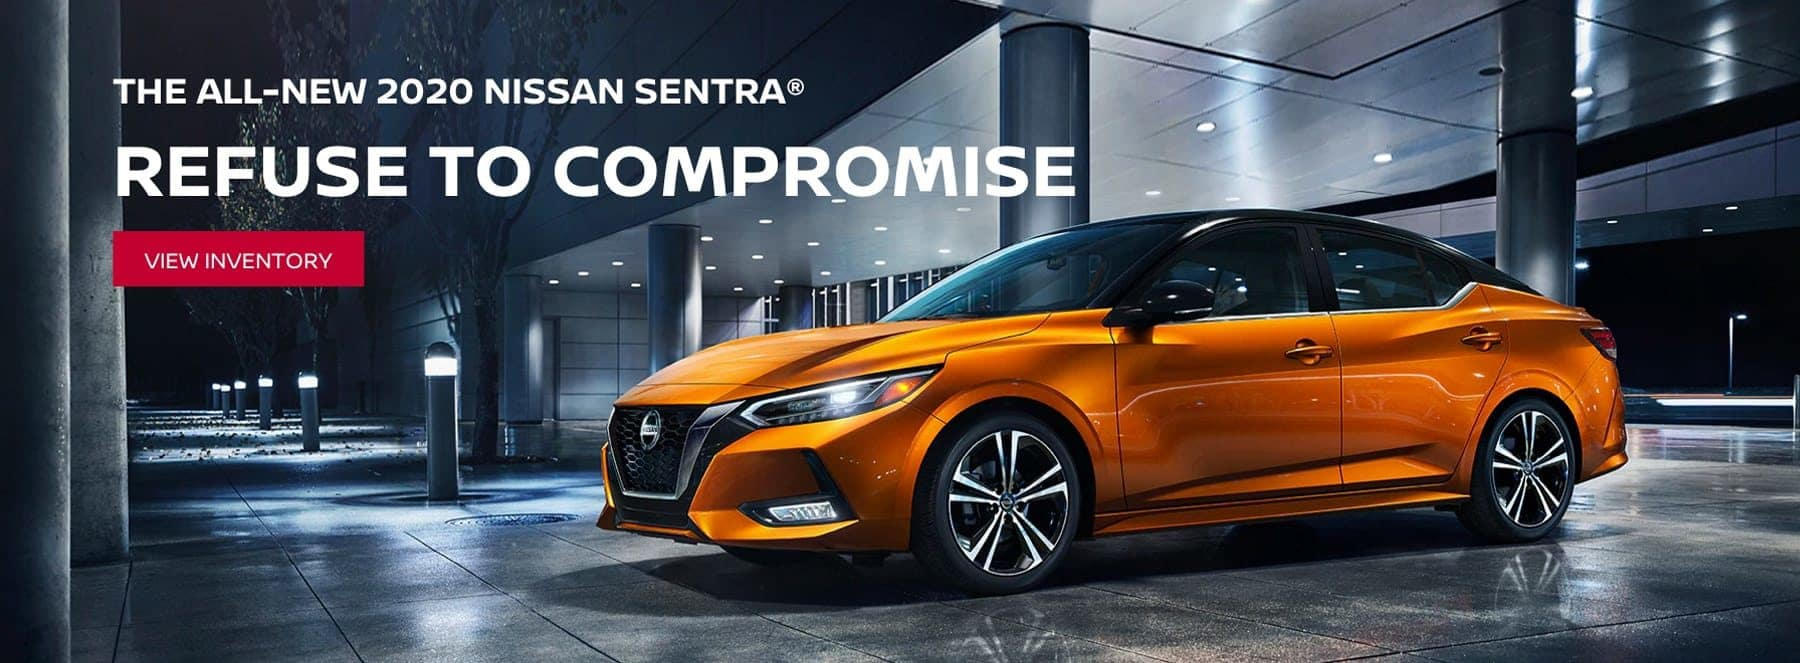 The All New 2020 Nissan Sentra - View Inventory